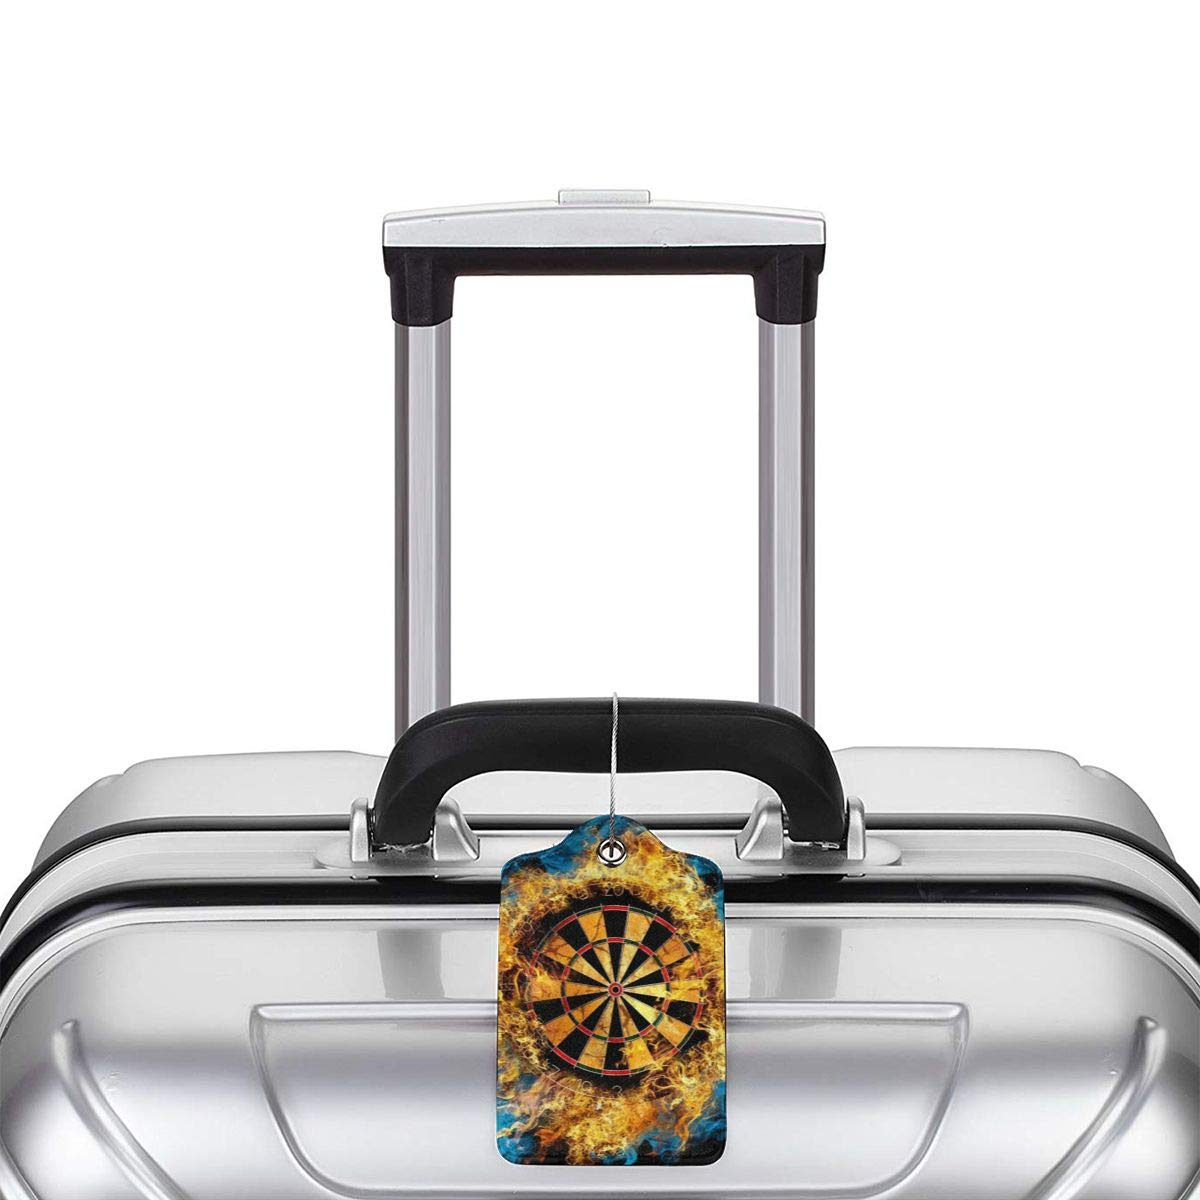 Godzigod Luggage Tags PU Leather Suitcase Card Tag with Stainless Steel Loop Travel Baggage Handbag Tag Labels Travel Accessories Flaming Dartboard Sports Game